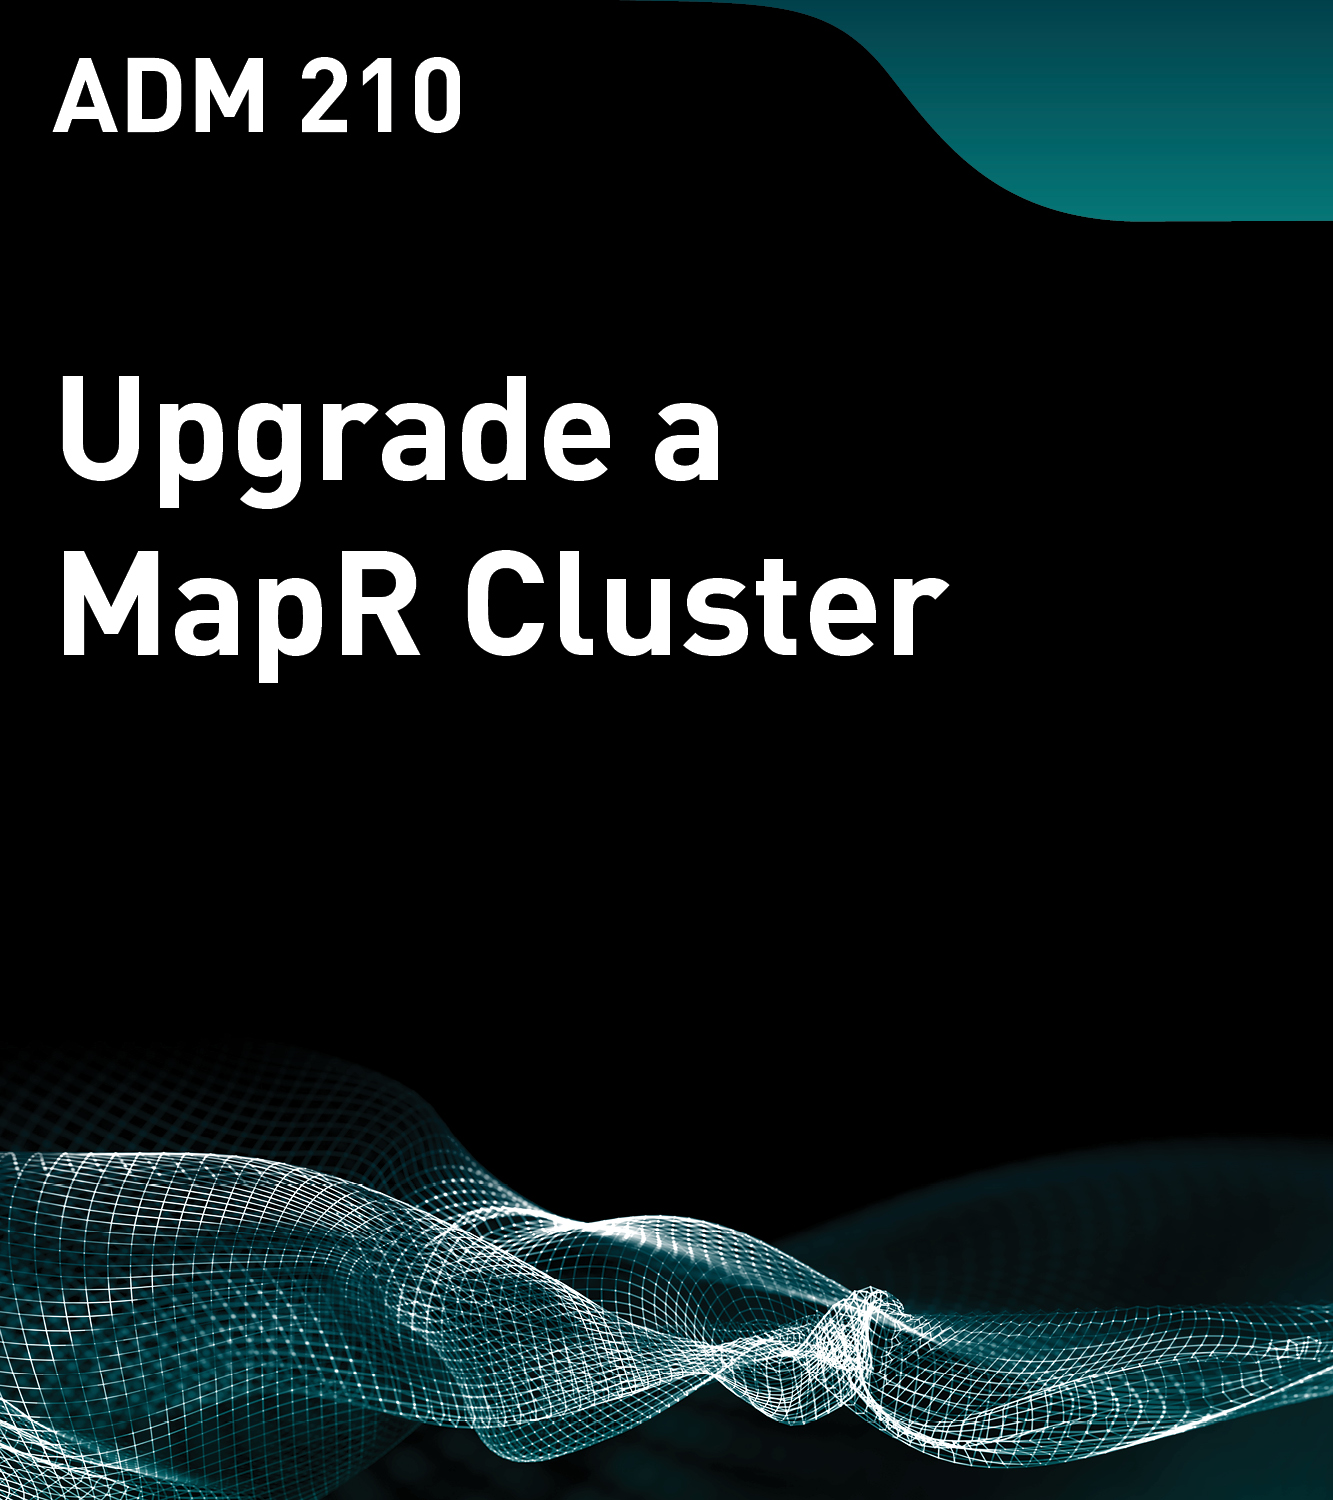 Upgrade a MapR Cluster